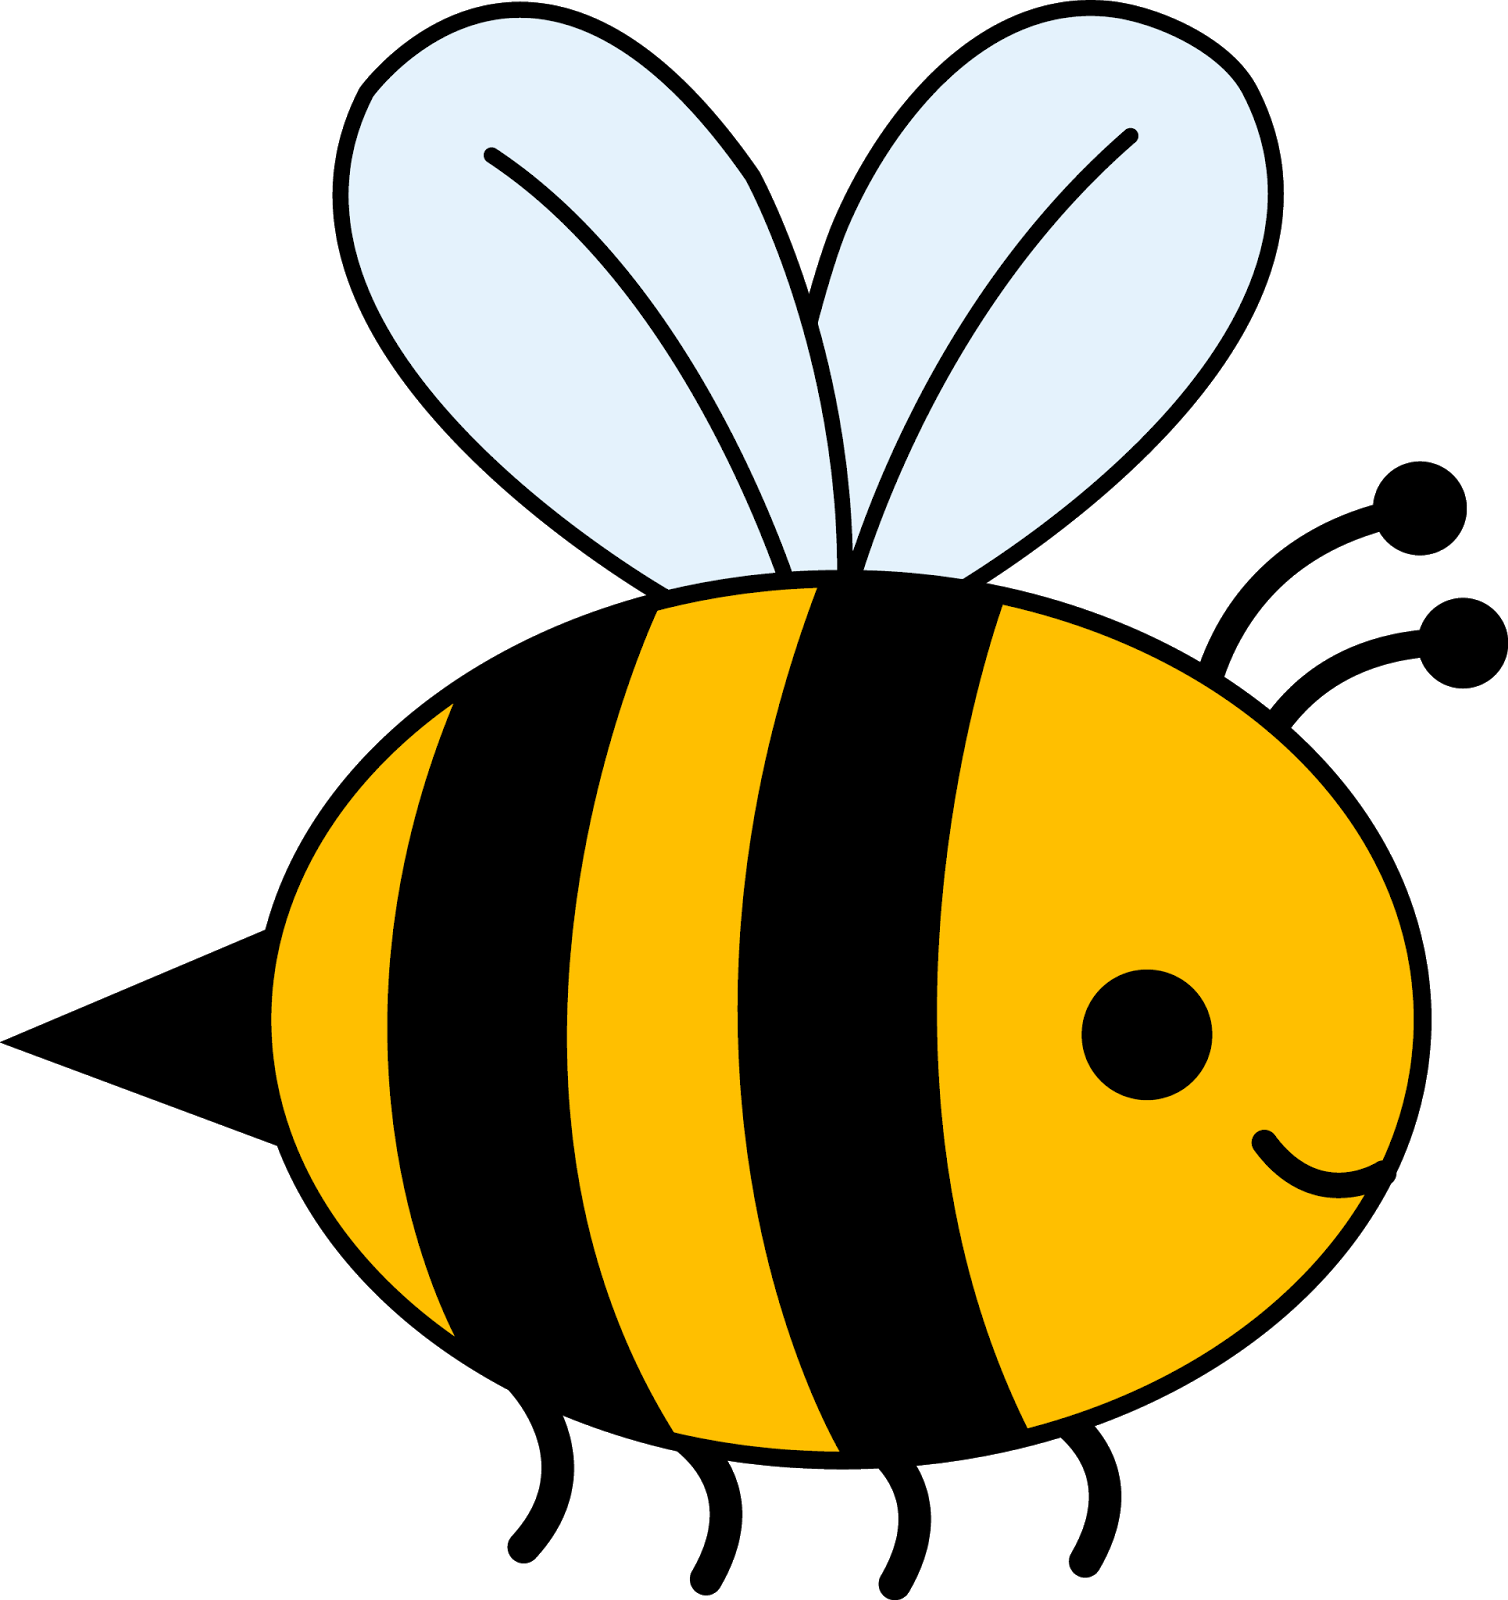 Bee clipart free colorful. Black and white panda